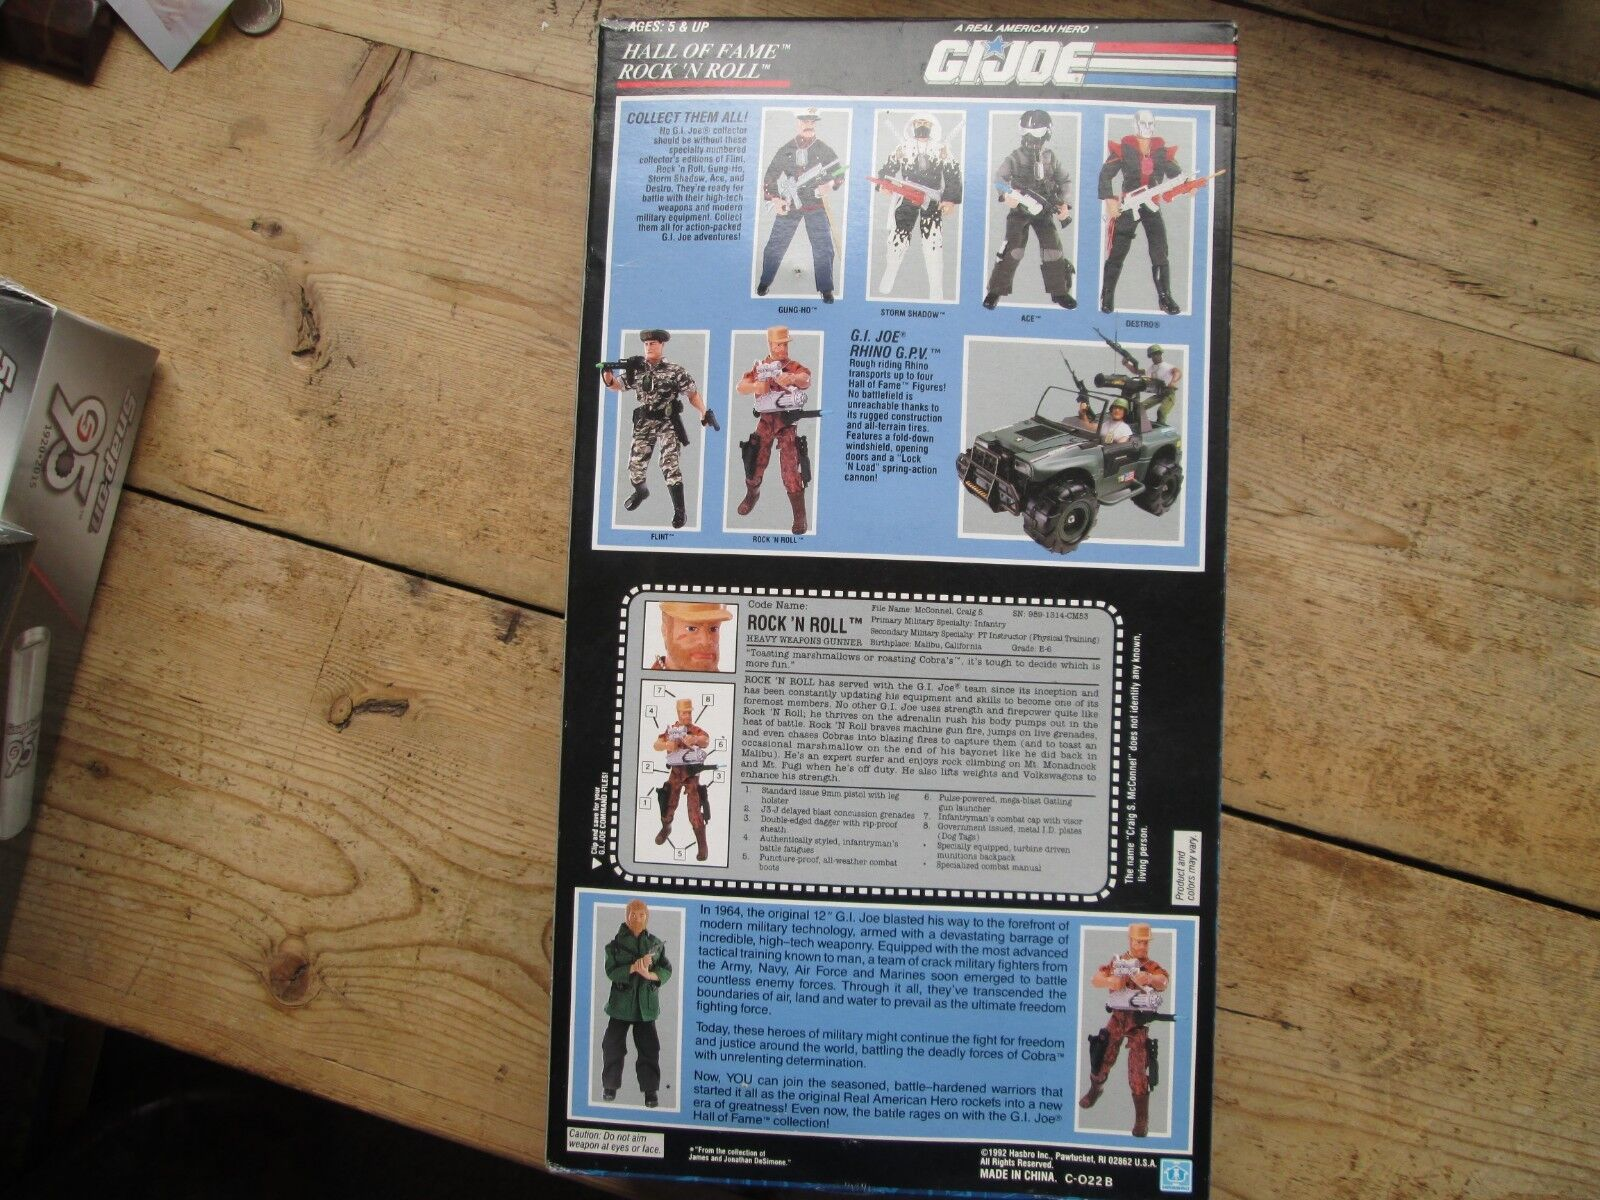 G I JOE DOLL AND ACCESSORIES HALL OF FAME - G I JOE BOXED AND UNOPENED